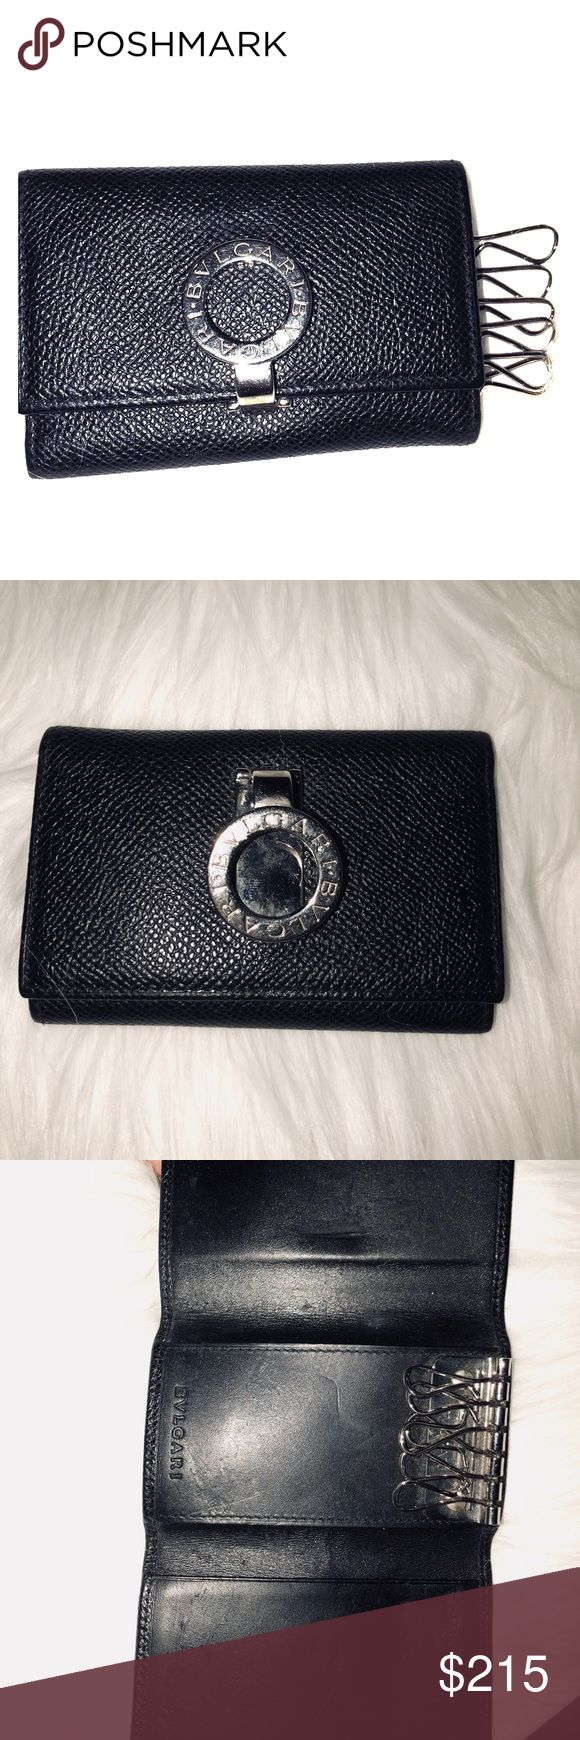 ♥️BVLGARI 6 key Holder/Case♥️ Preowned - shows wear from normal use- leather o Inside is soft and has some marks and scuffs from keys being attached and closed.. black leather with silver hard wear - metal has some hairline scratches. Outside still in very good condition doesn't have any major flaws- inside shows it's has been used. Item is preowned so please don't expect a new item- see all pics before purchasing Bulgari Accessories Key & Card Holders